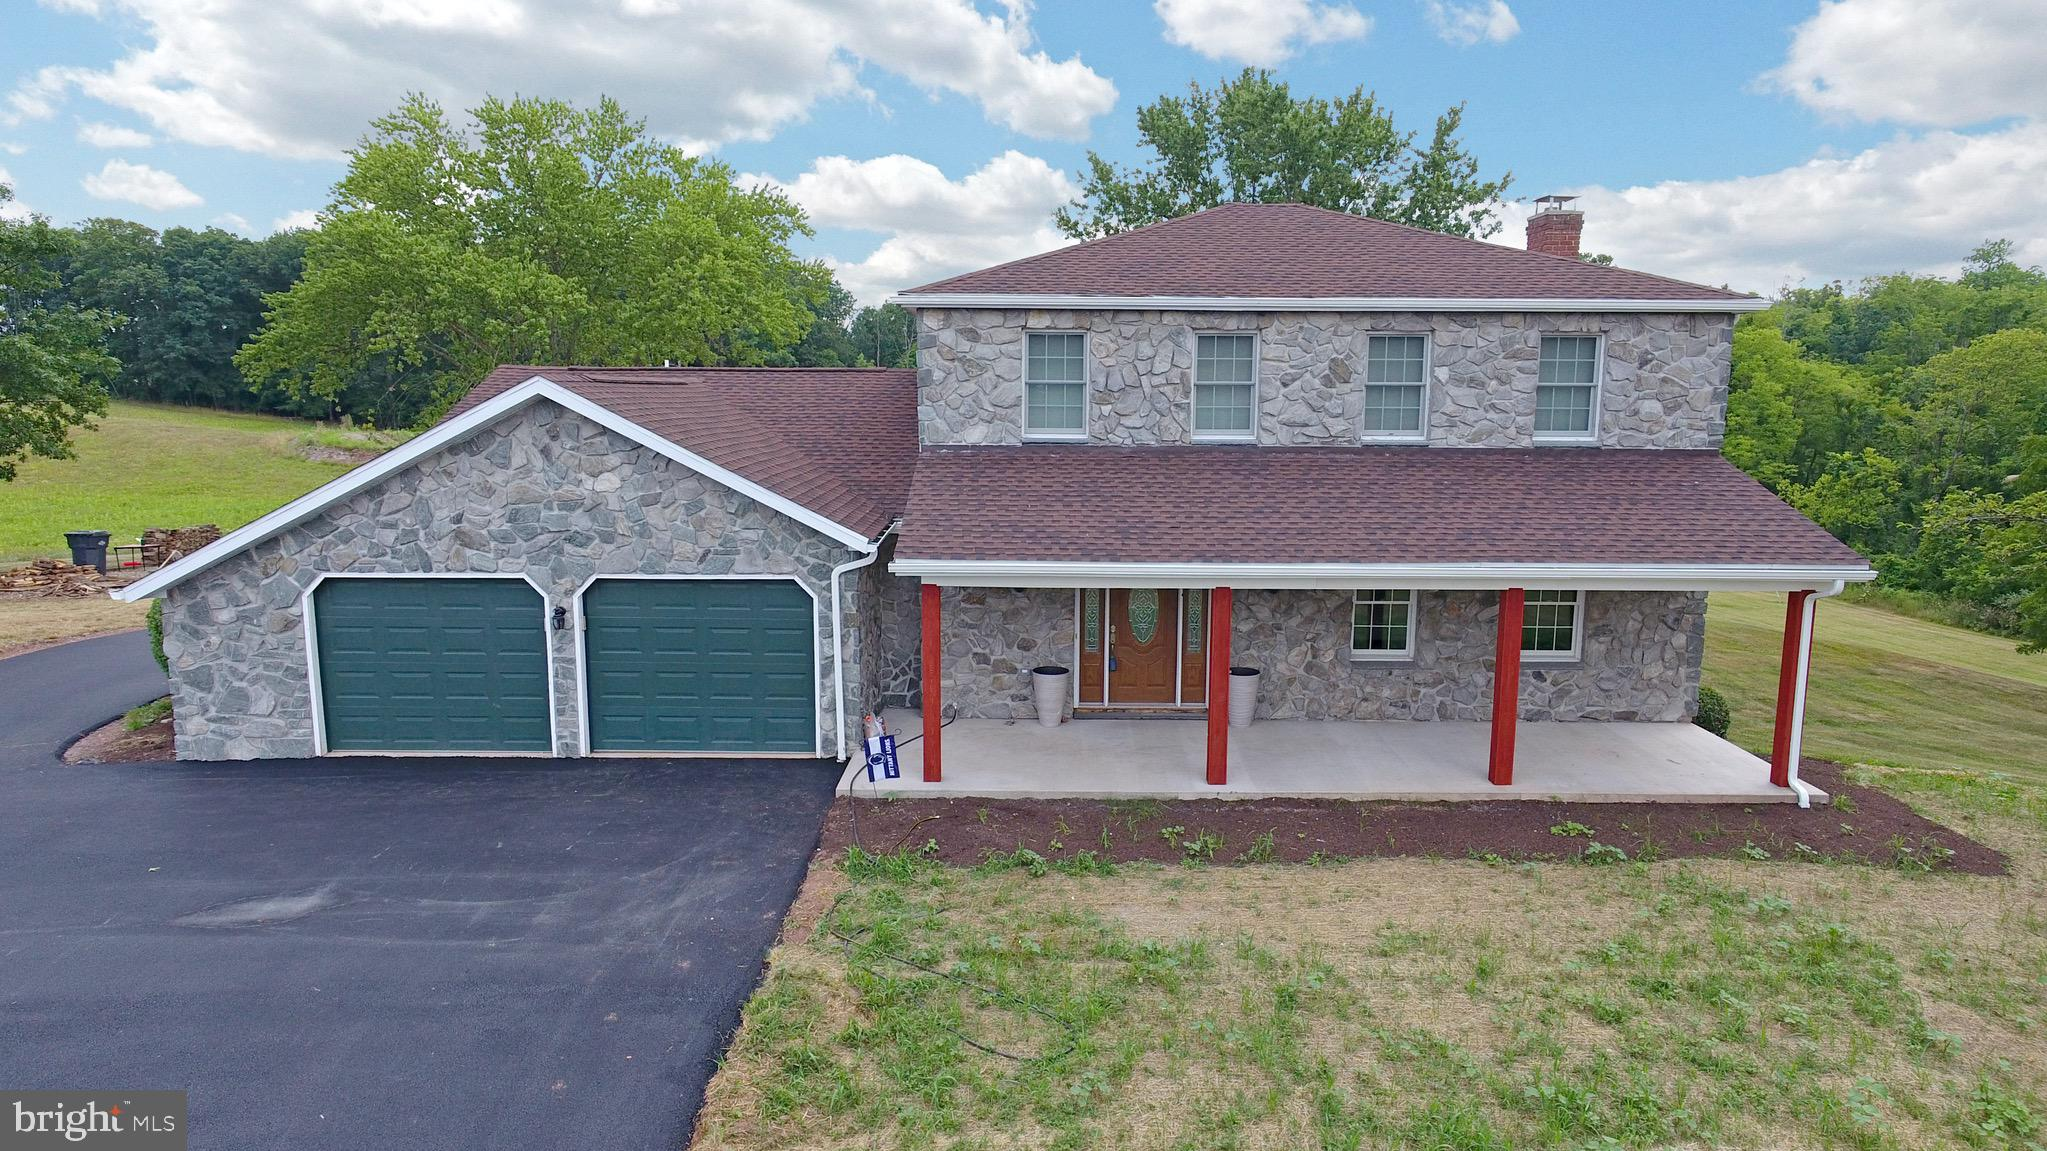 1130 E Lisburn Road, Mechanicsburg, PA 17055